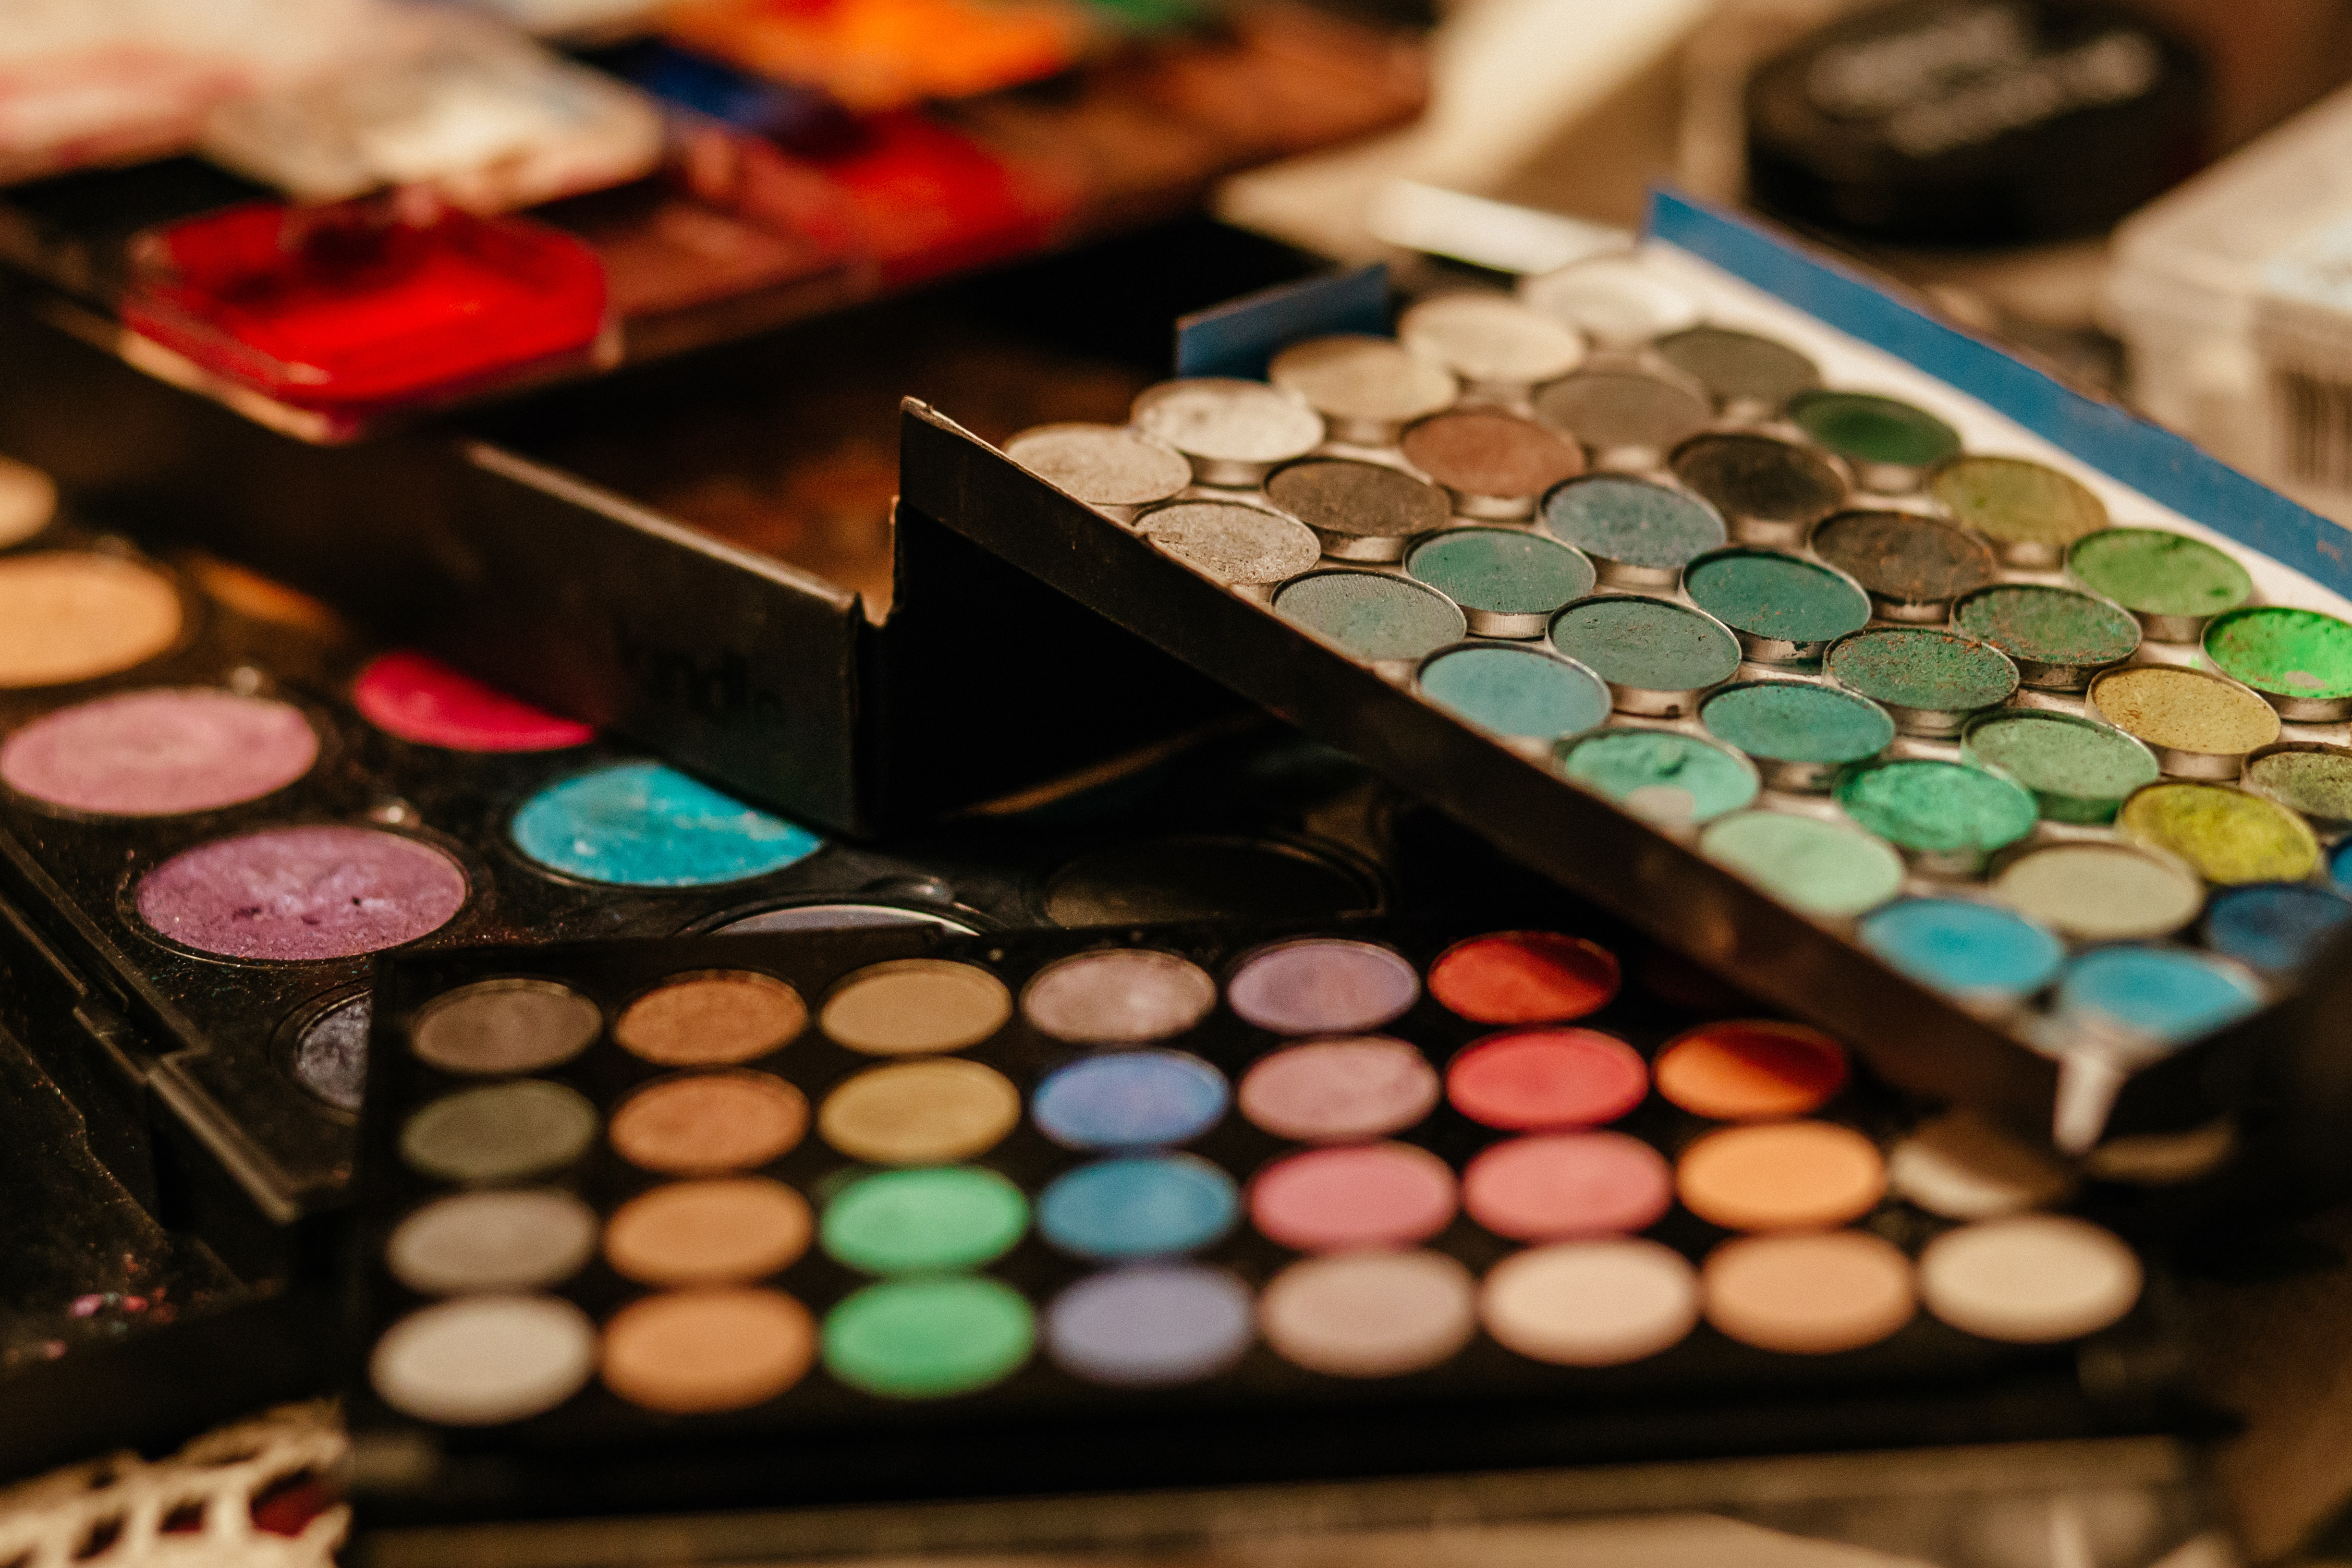 The Beauty Ingredient Blacklist: 10 Ingredients to Avoid at All Costs